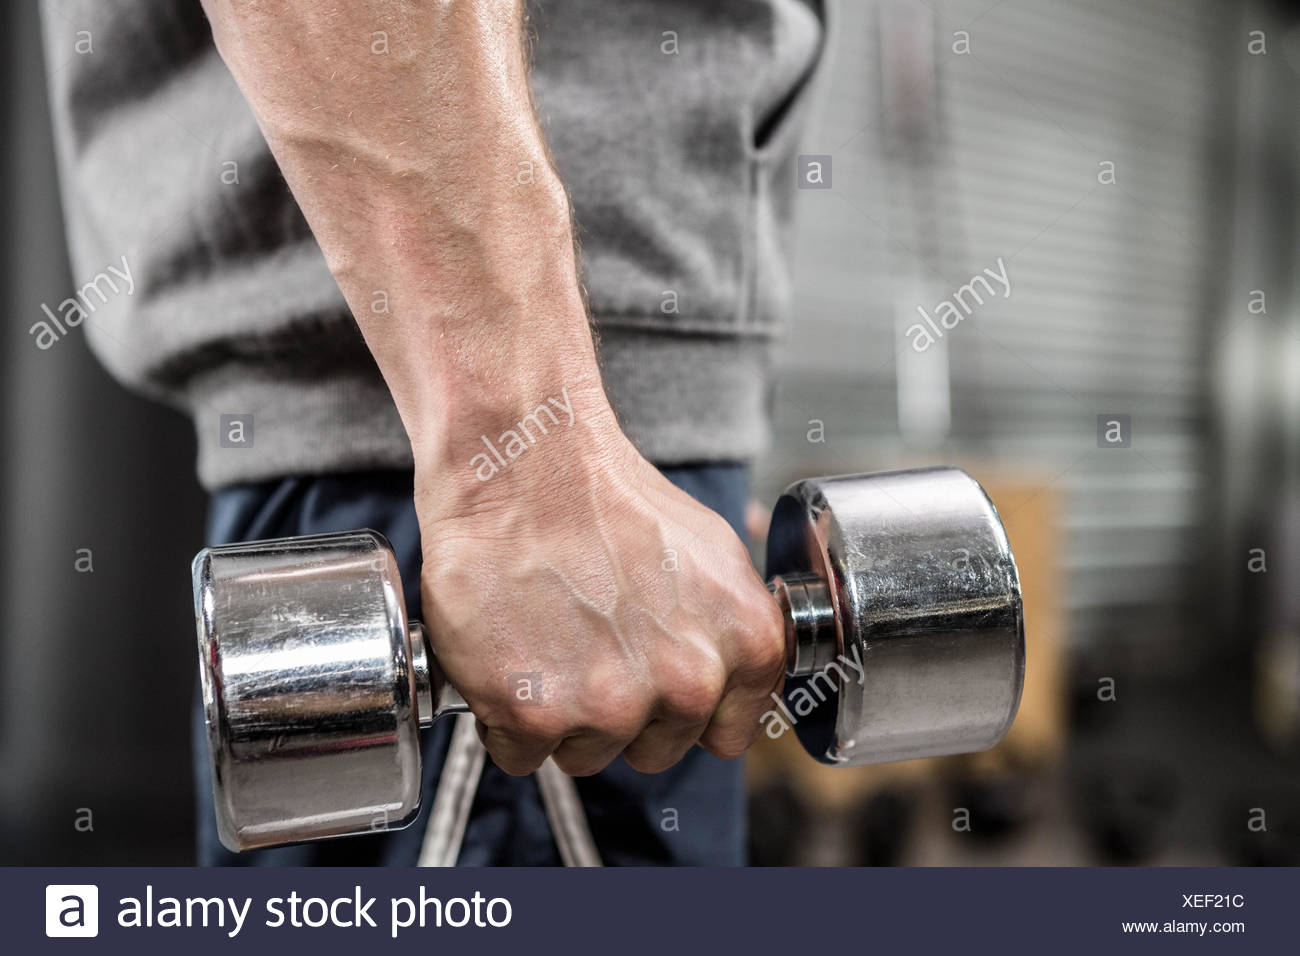 Muscular man with grey jumper holding dumbbell - Stock Image